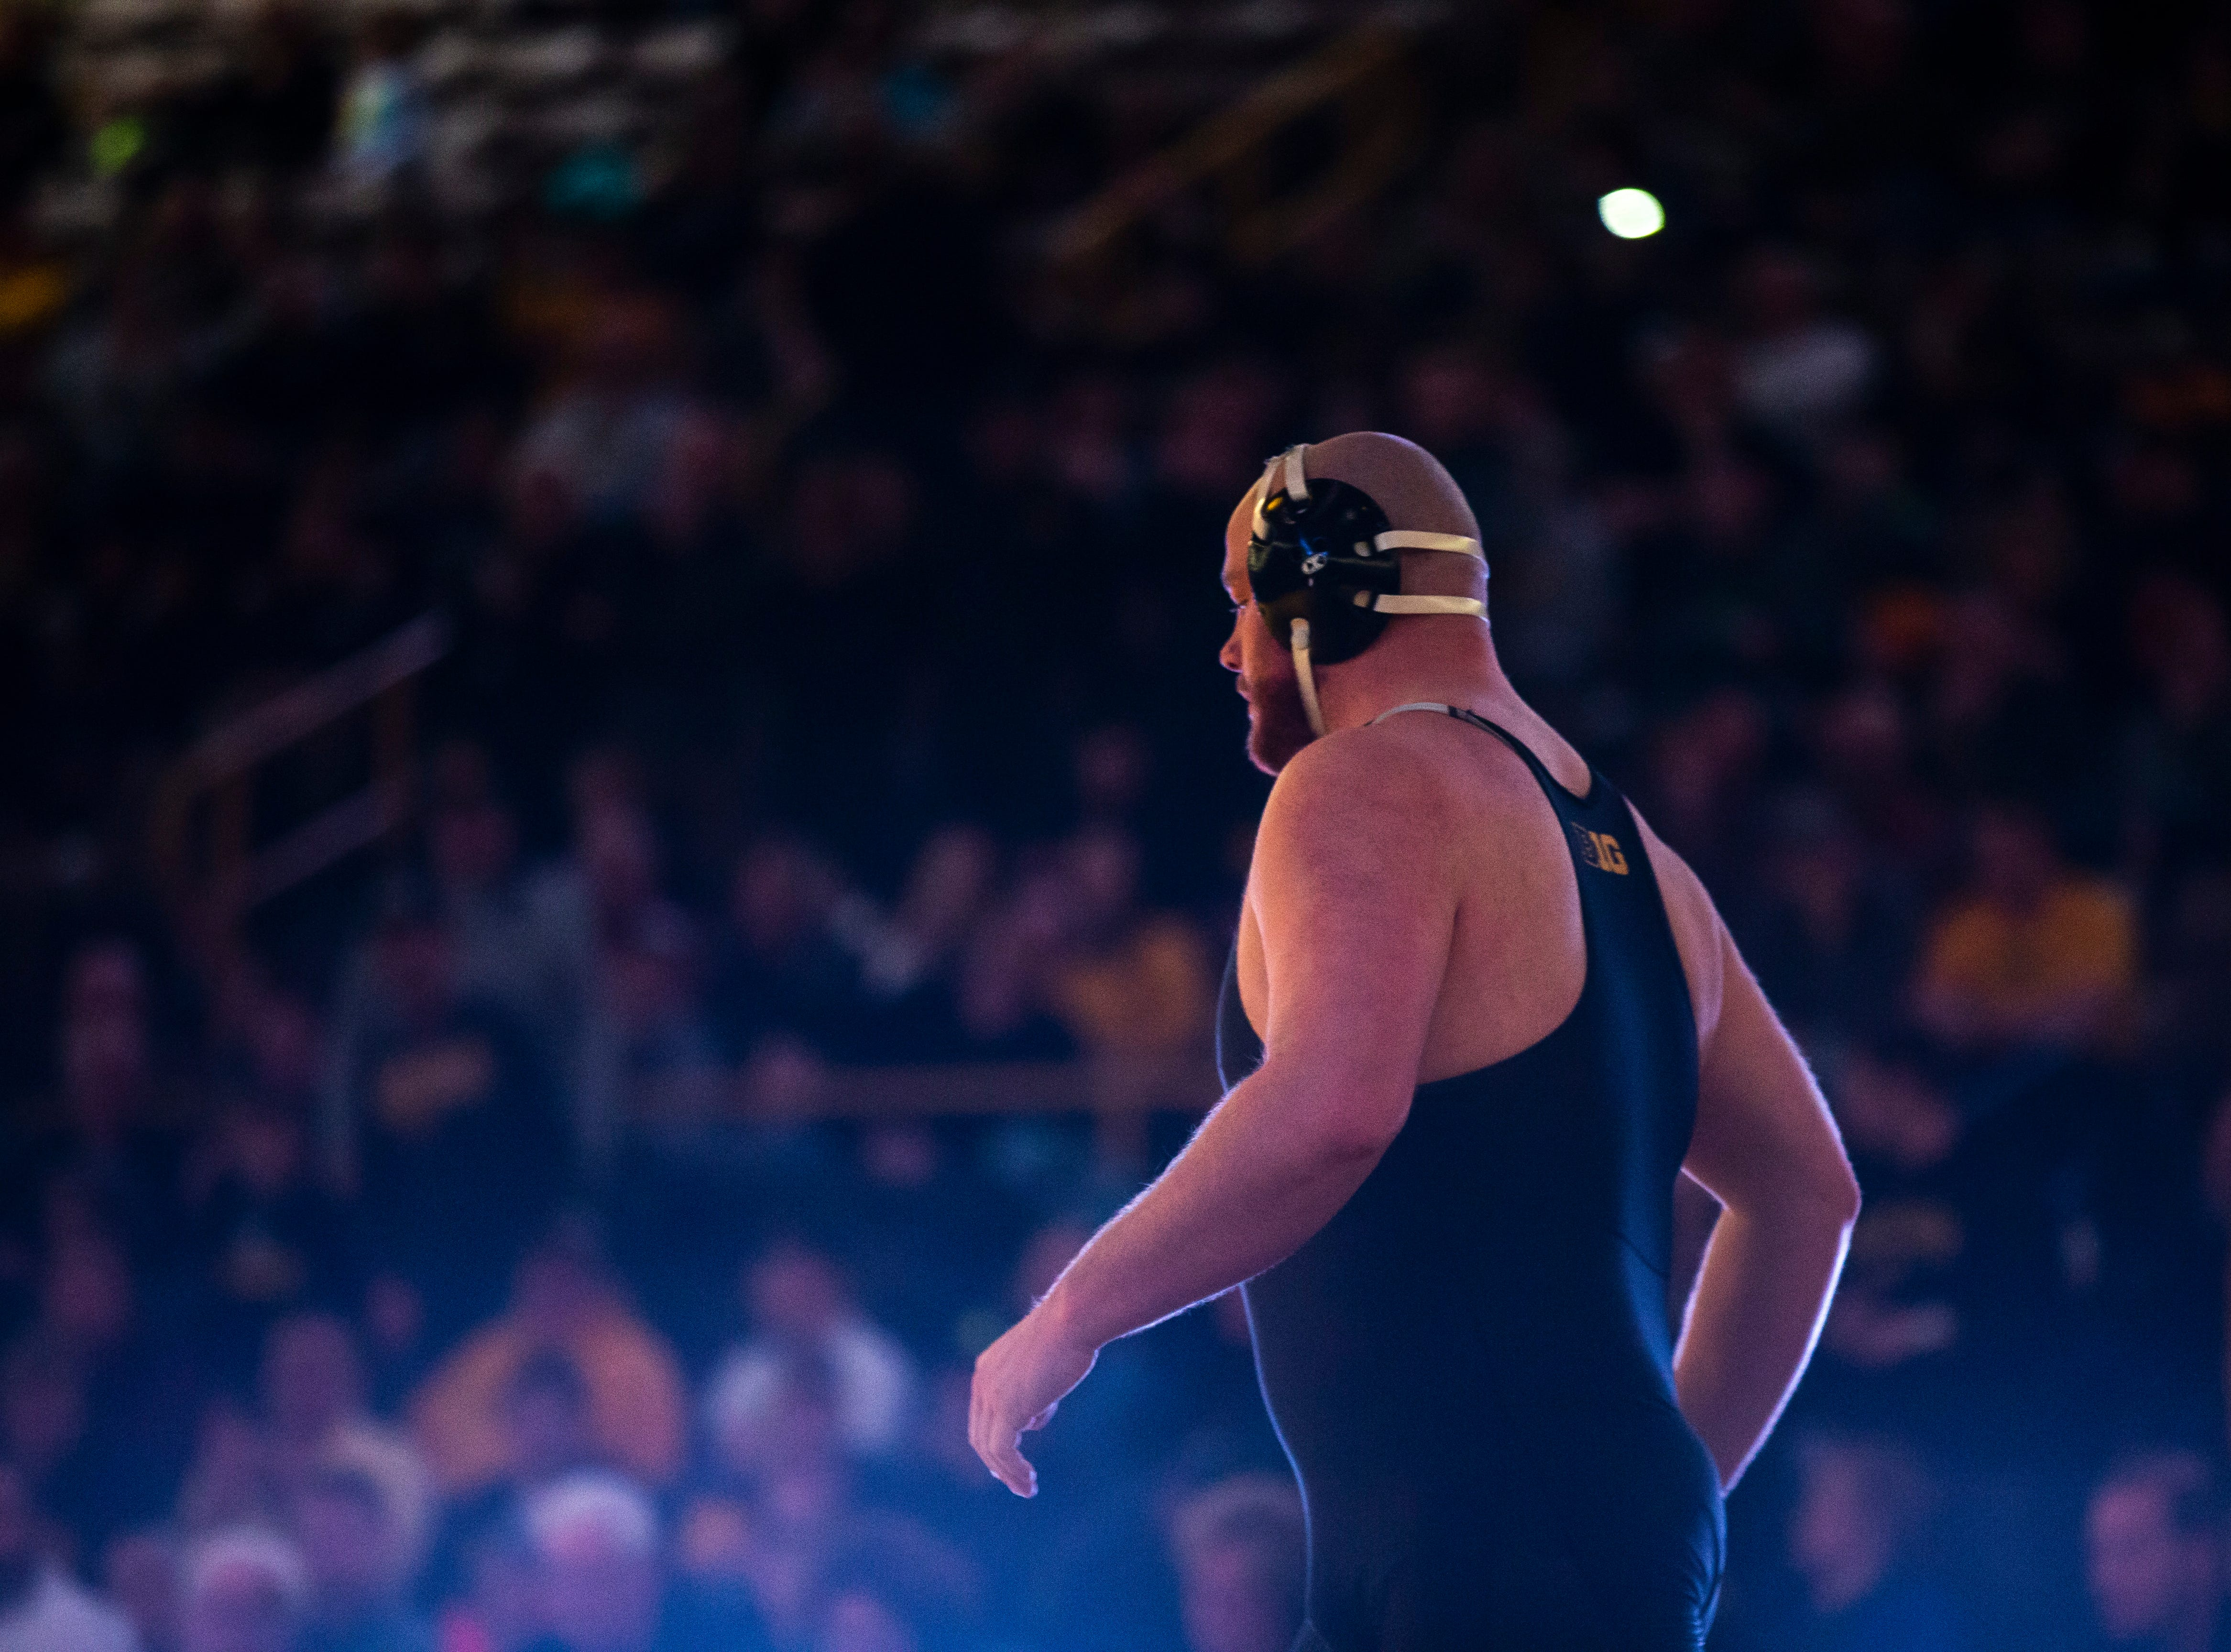 Iowa's Sam Stoll is introduced before a match at 285 during a NCAA Big Ten Conference wrestling dual on Friday, Feb. 8, 2019 at Carver-Hawkeye Arena in Iowa City, Iowa.